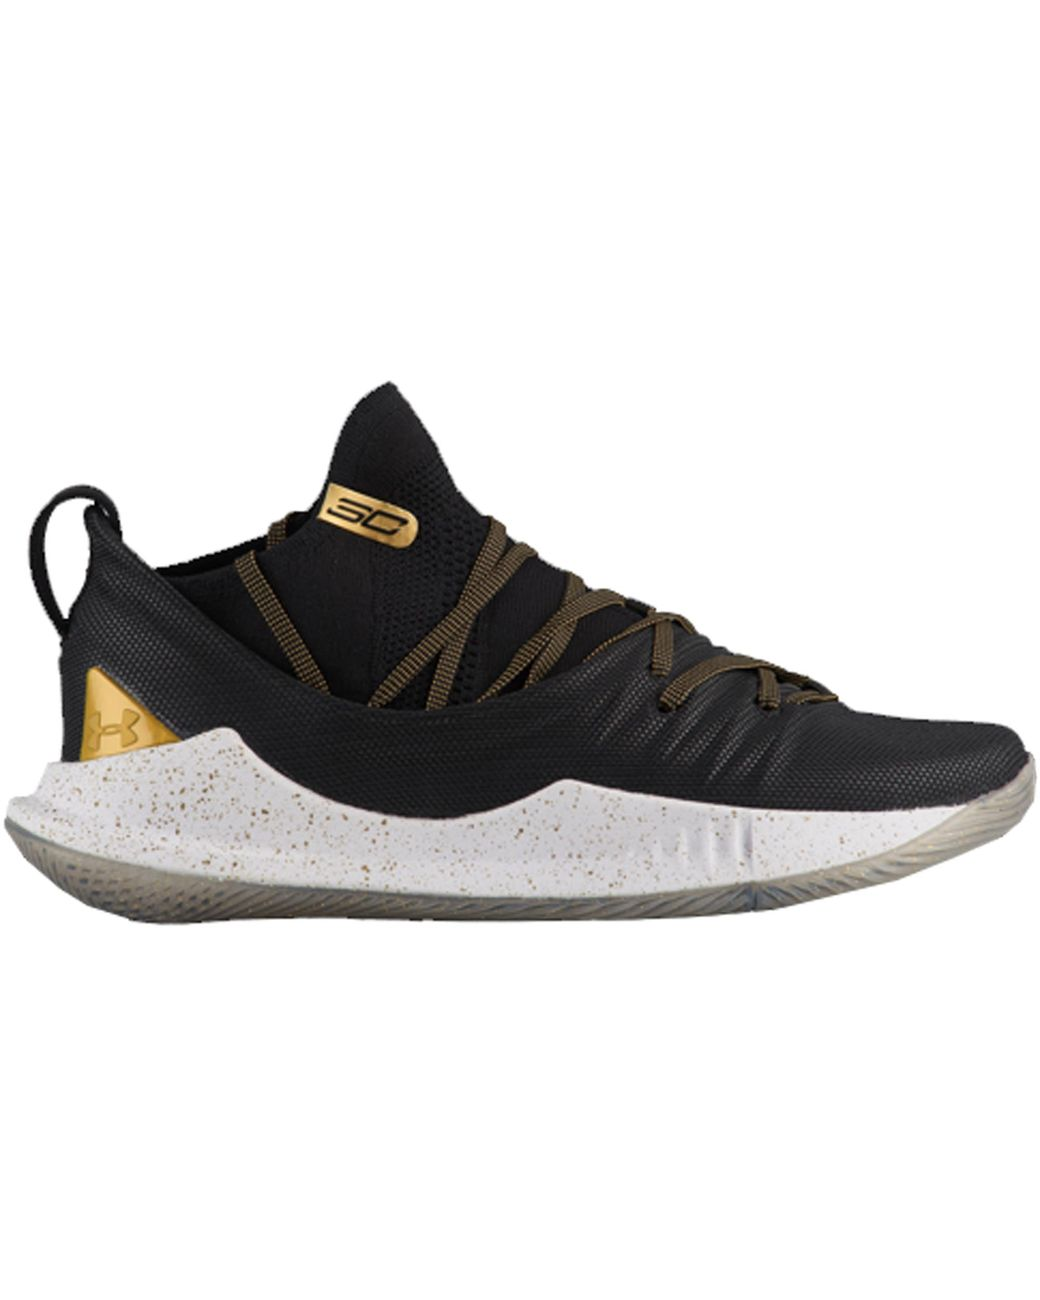 Under Armour Curry 5 Black Gold for Men